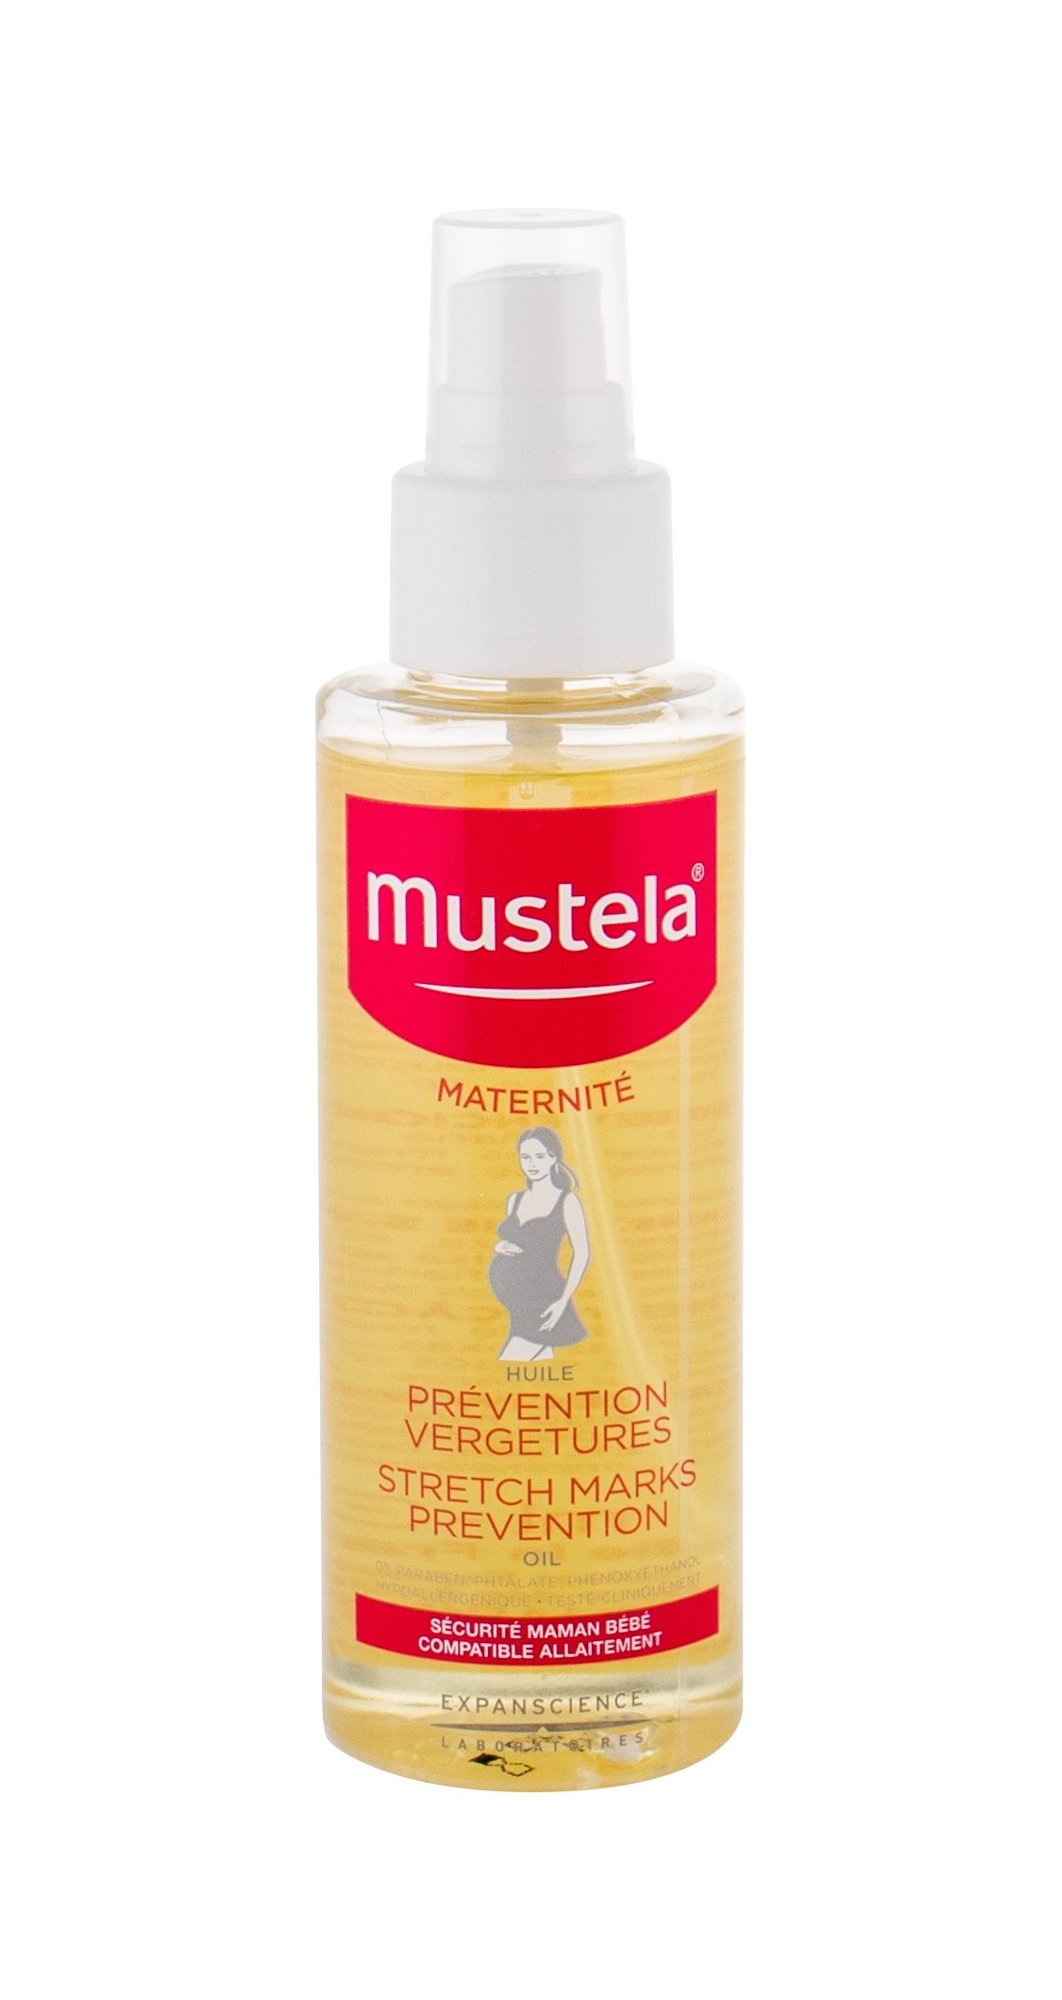 Mustela Maternité Cellulite and Stretch Marks 105ml  Stretch Marks Prevention Oil